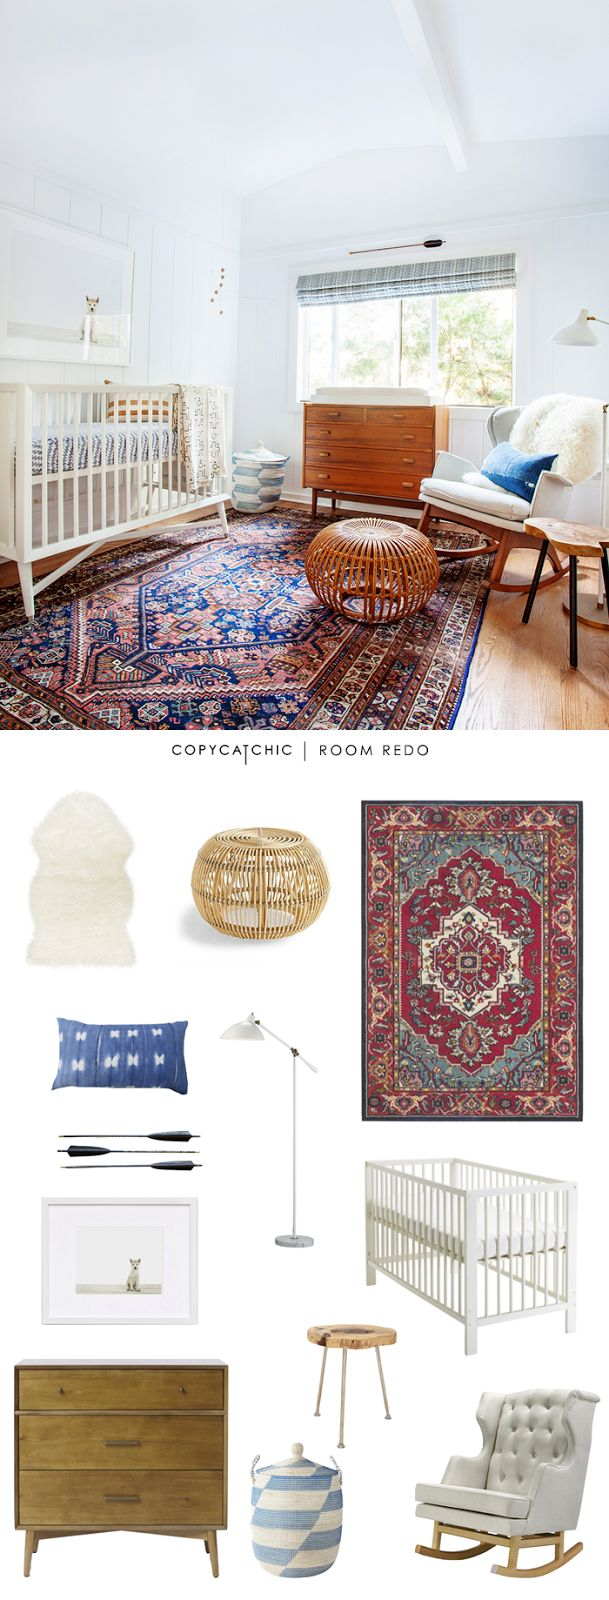 Copy Cat Chic: Copy Cat Chic | Mid-Century Eclectic Nursery by @audreycdyer